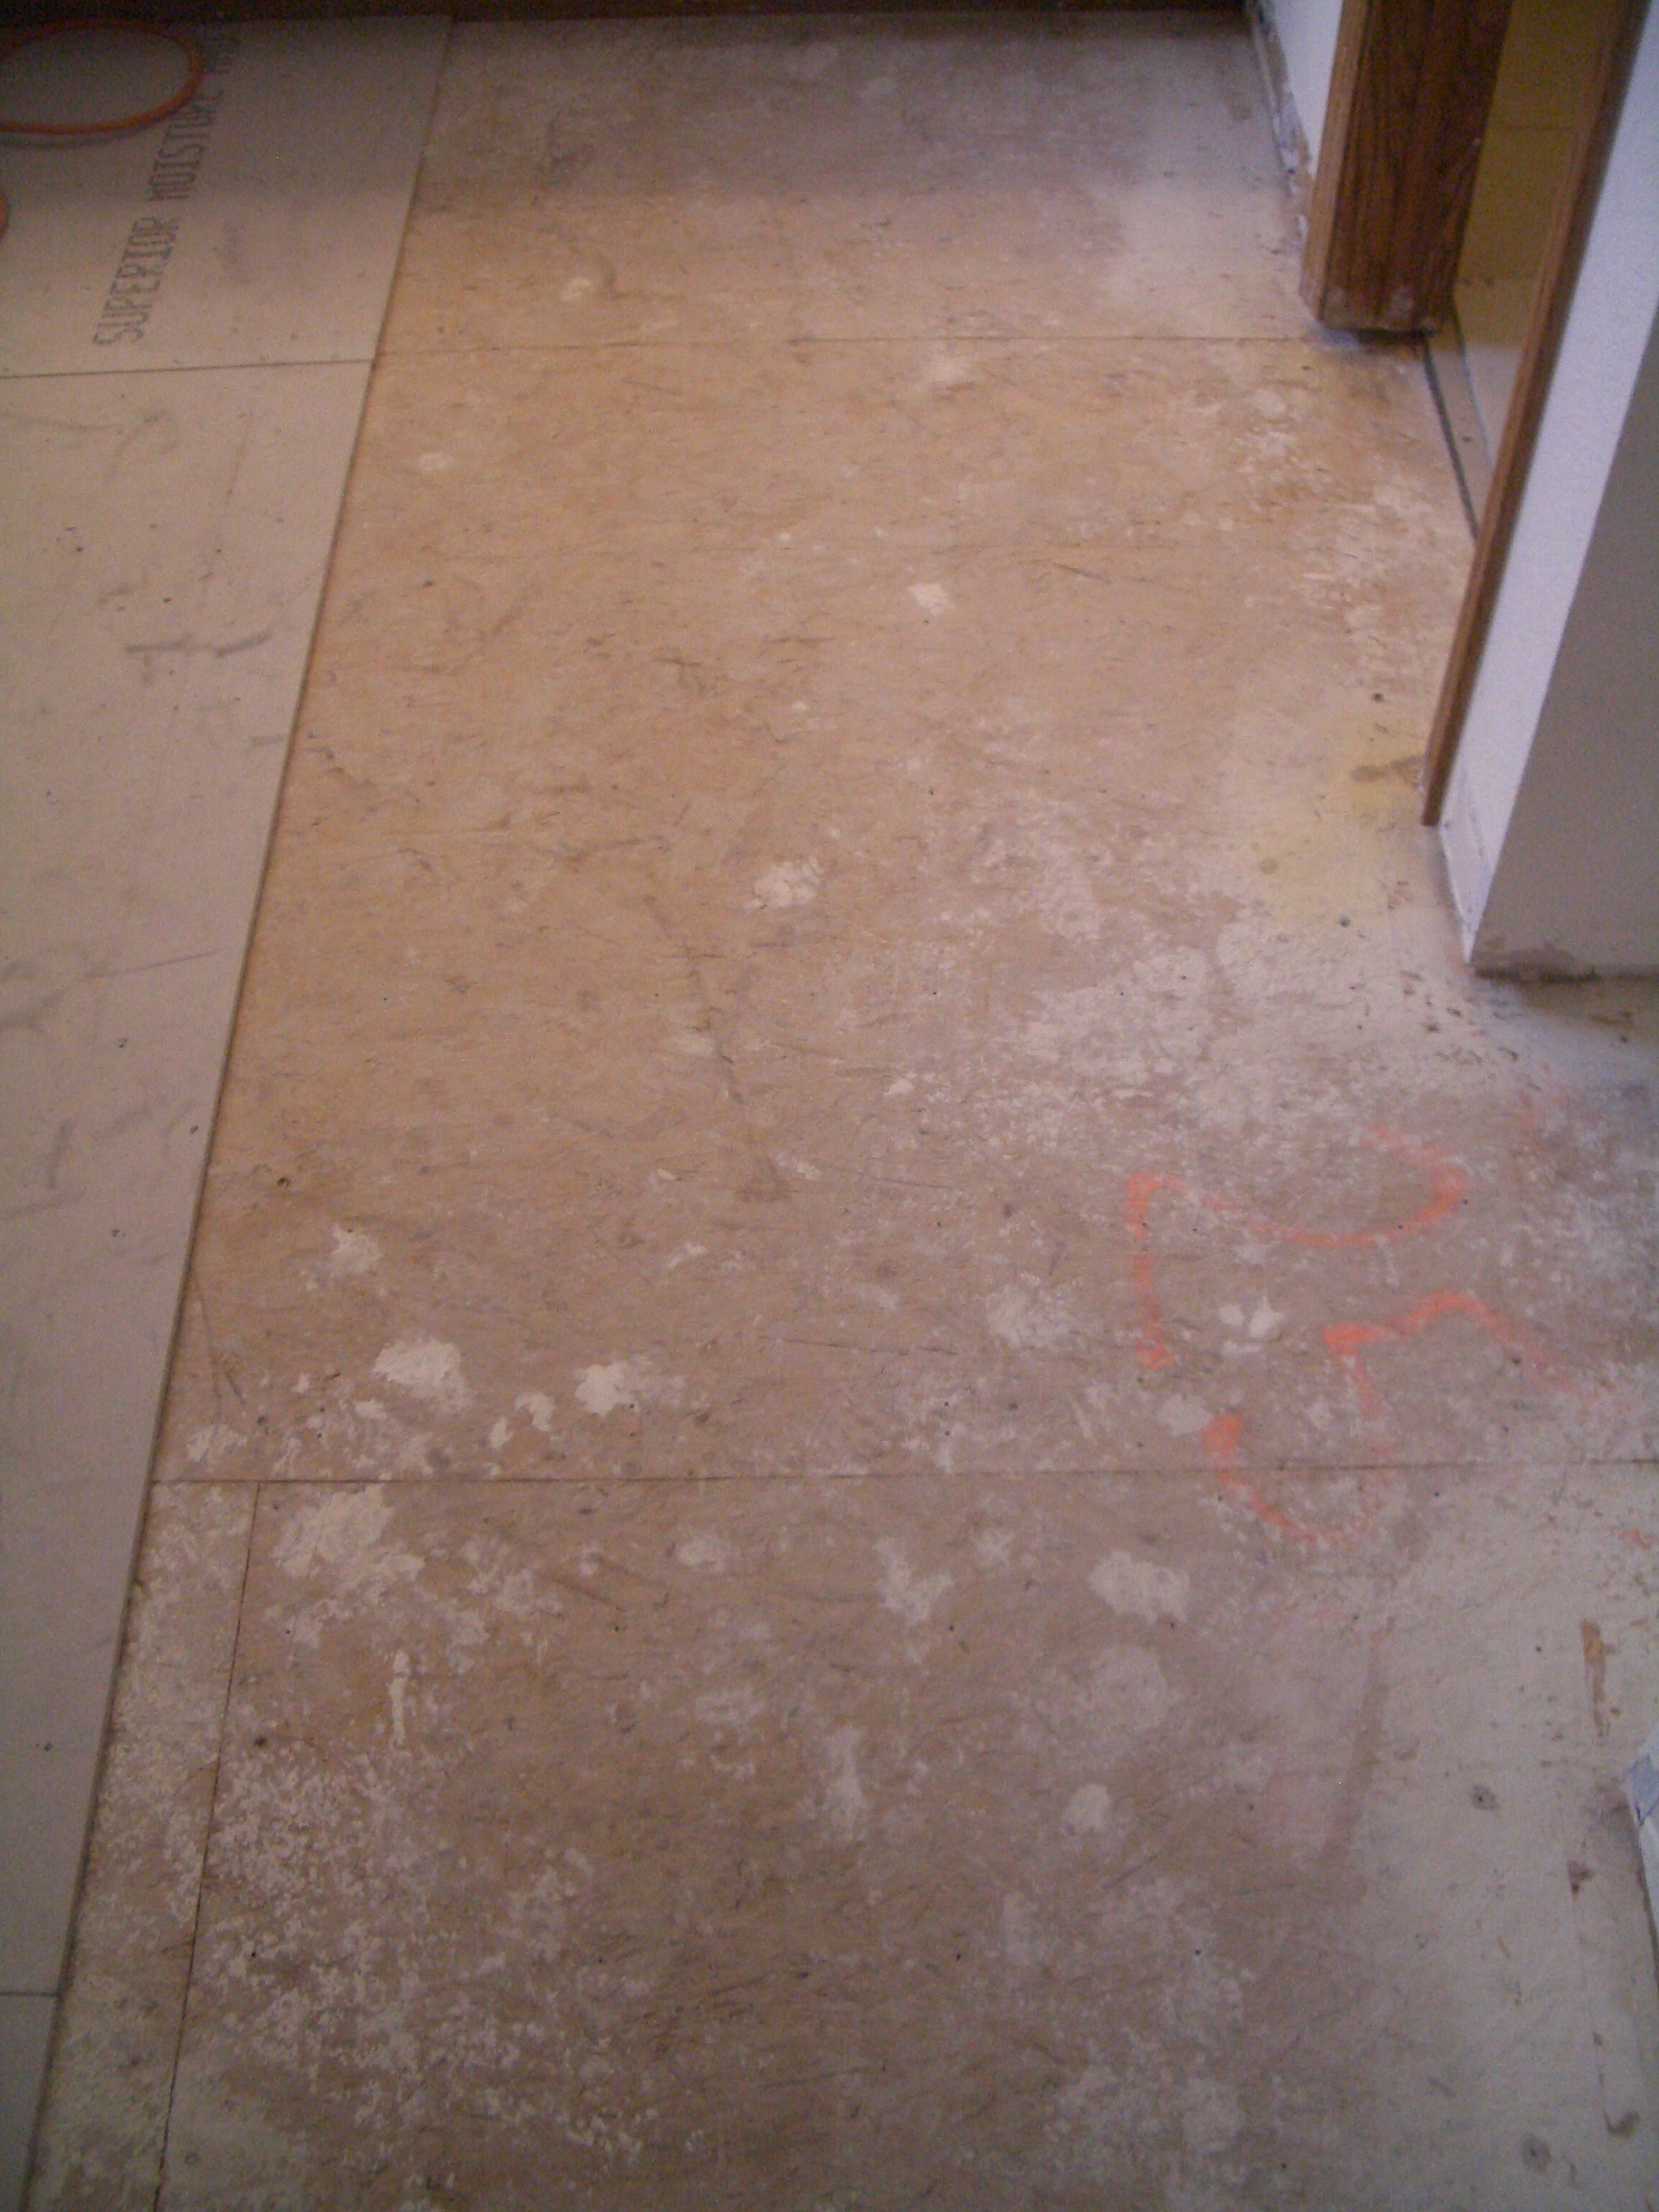 How to install cement backerboard for floor tile dry fitting backerboard on floor dailygadgetfo Images